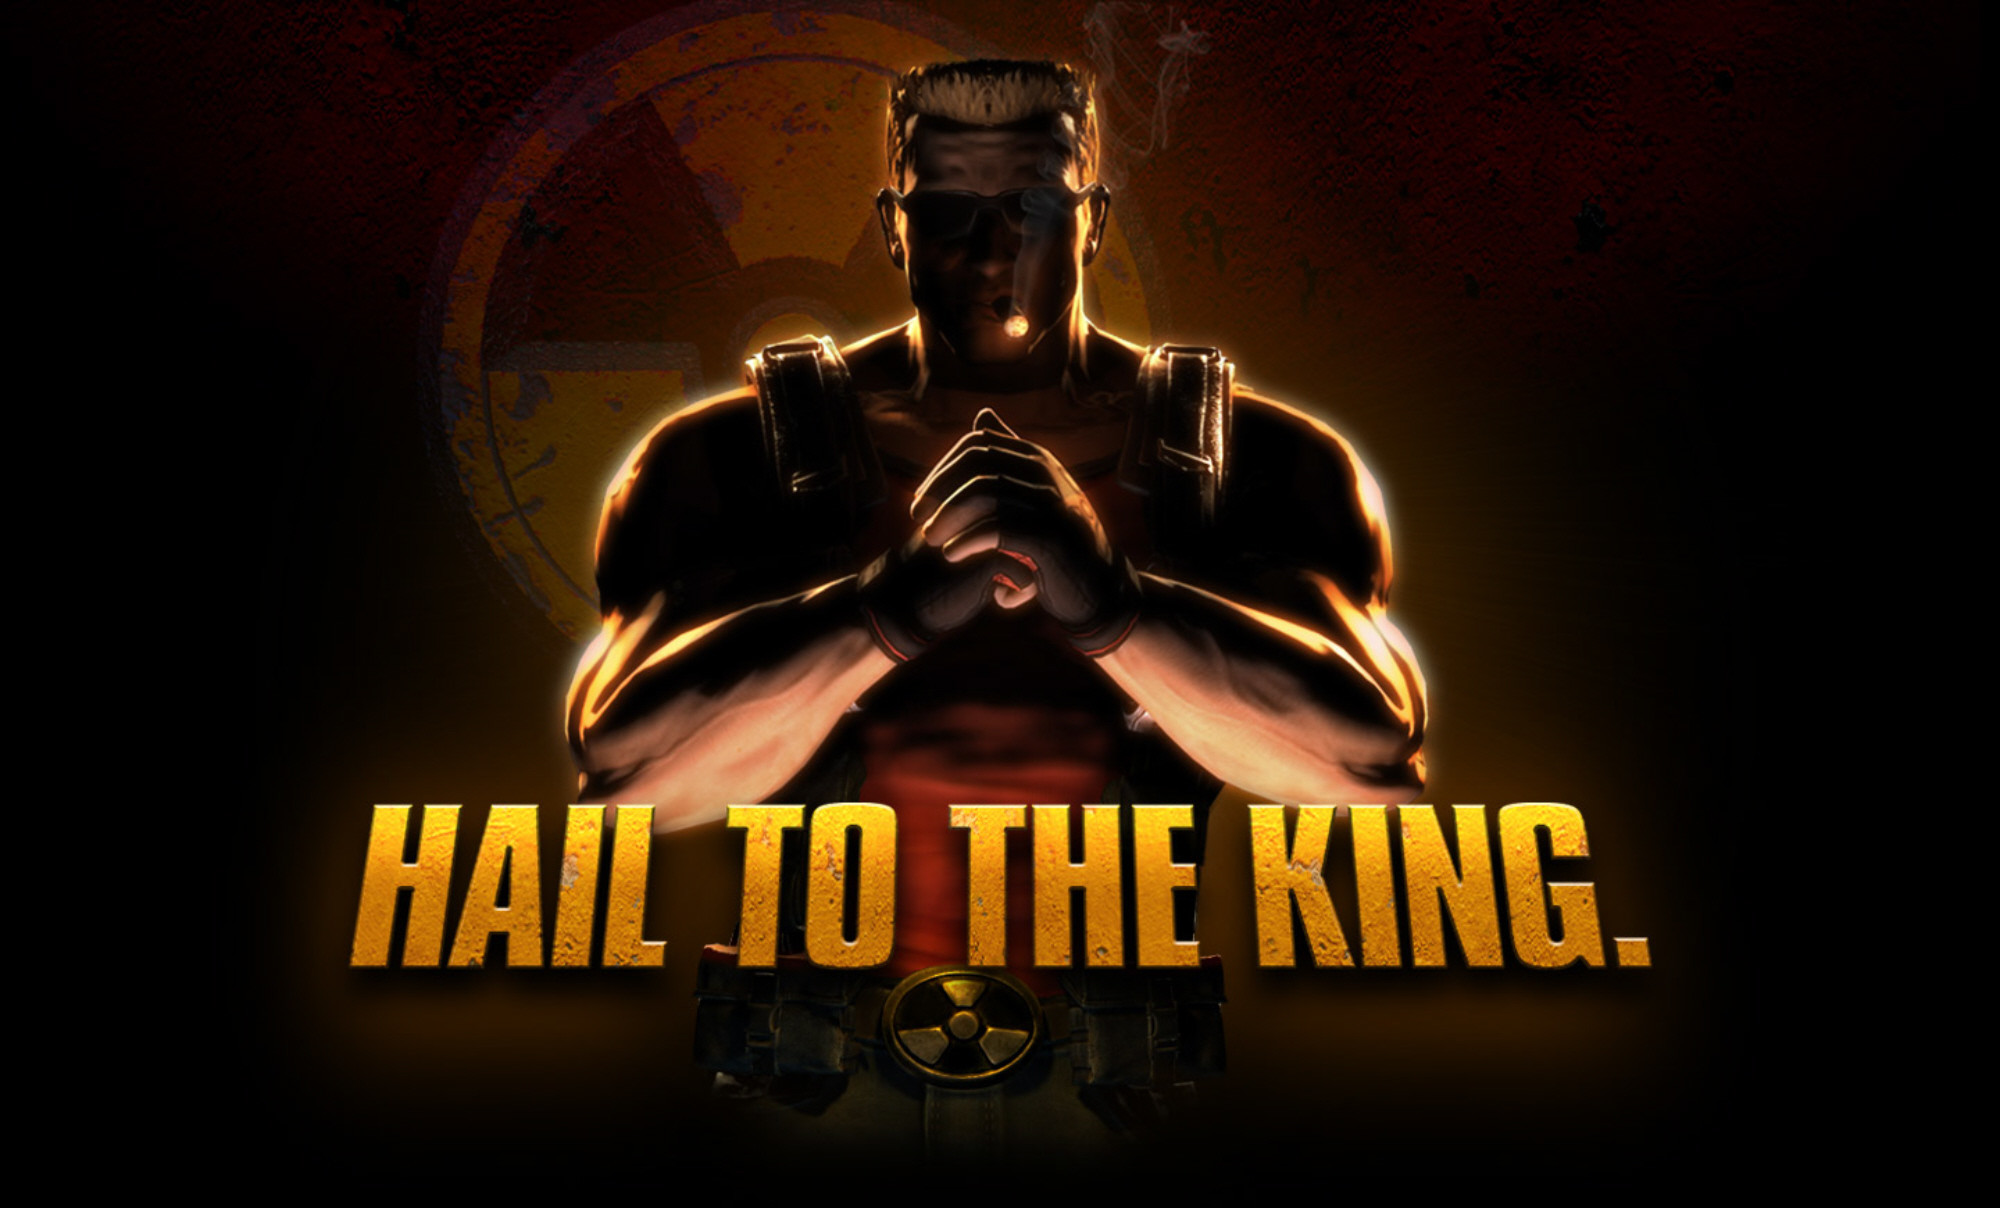 2000x1208 Hail to the King: Deathbat 3D Games Wallpaper Free